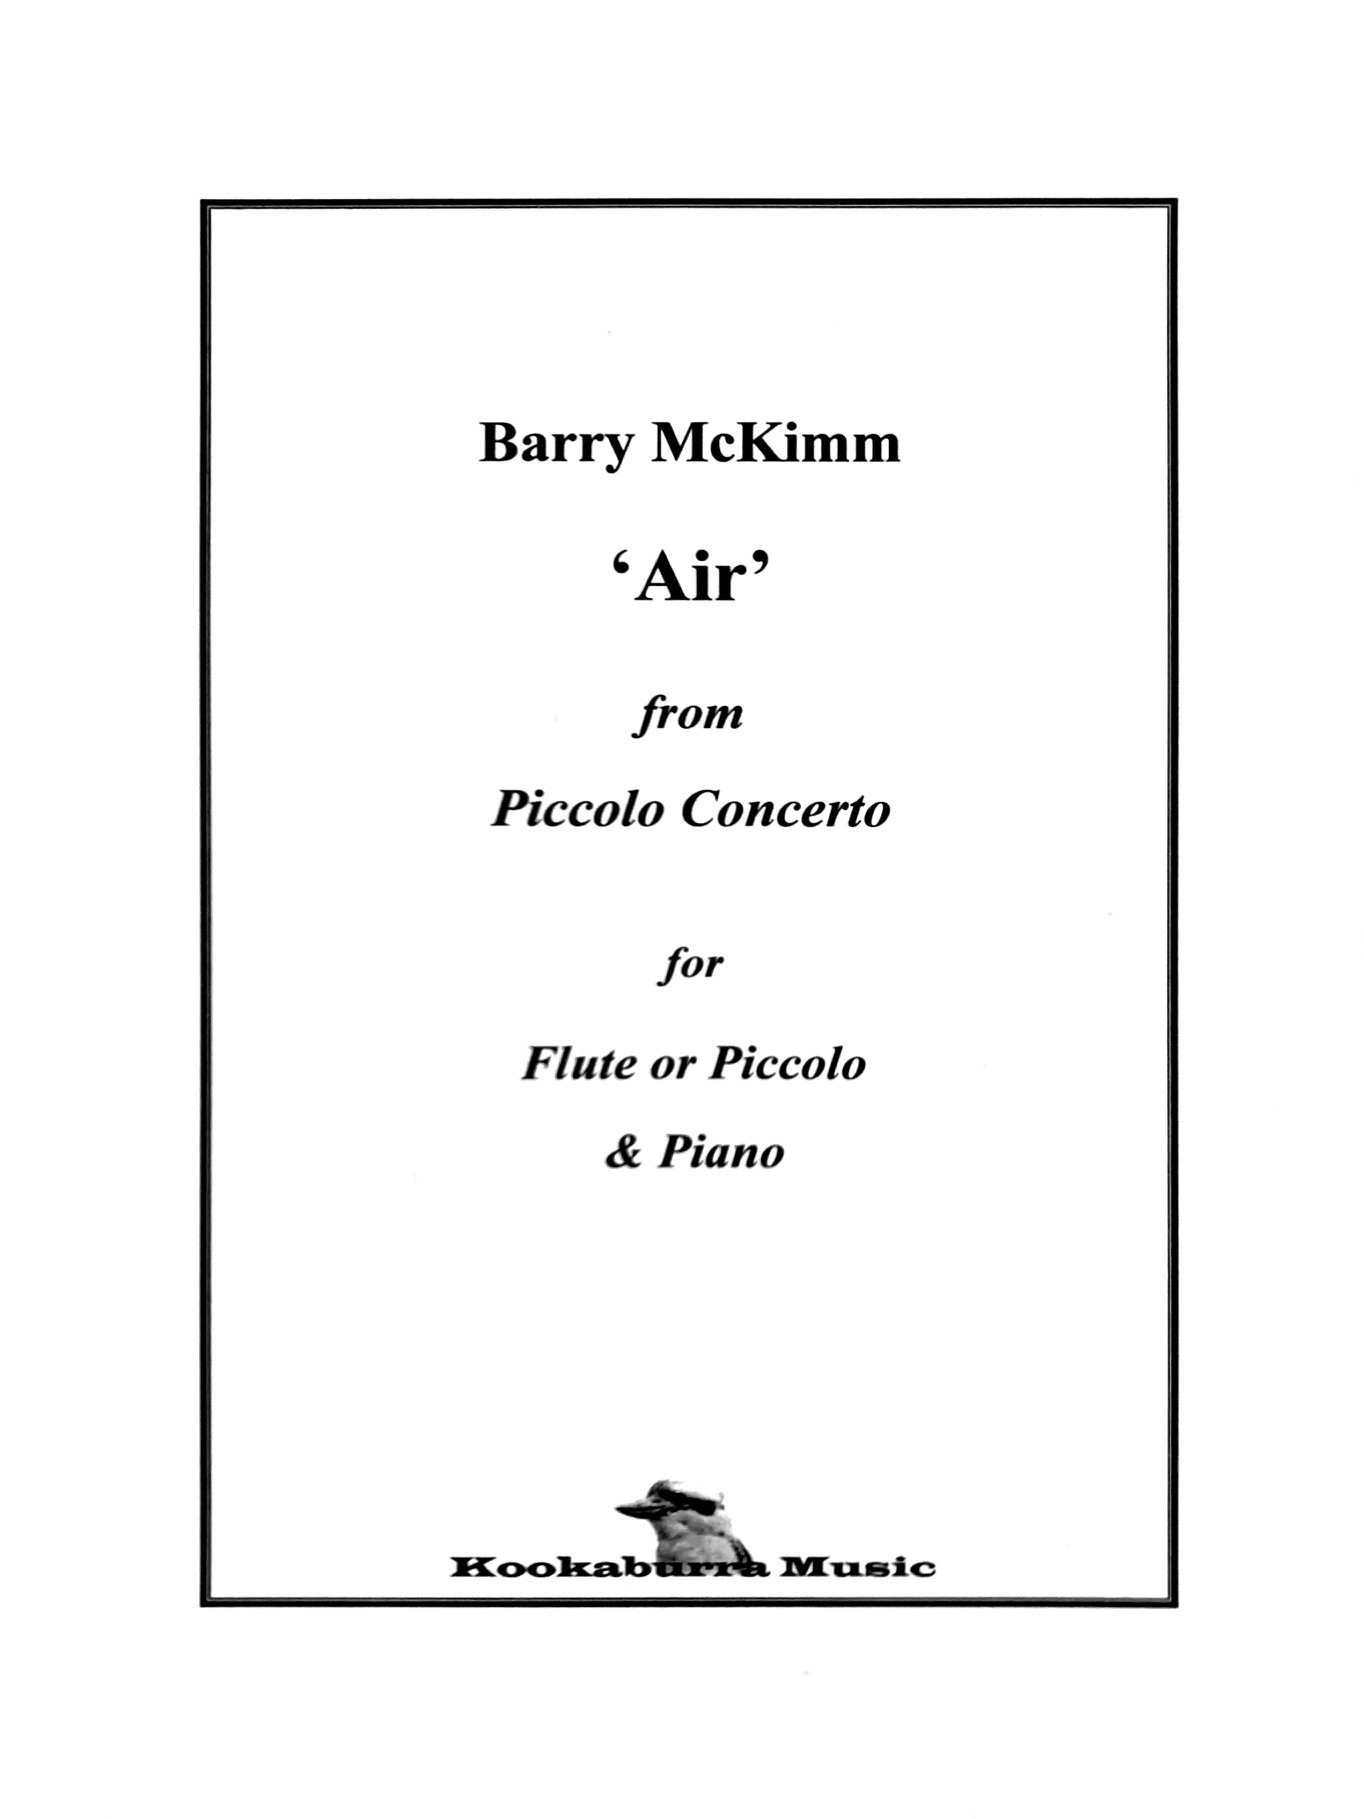 McKimm, B :: 'Air' from Piccolo Concerto